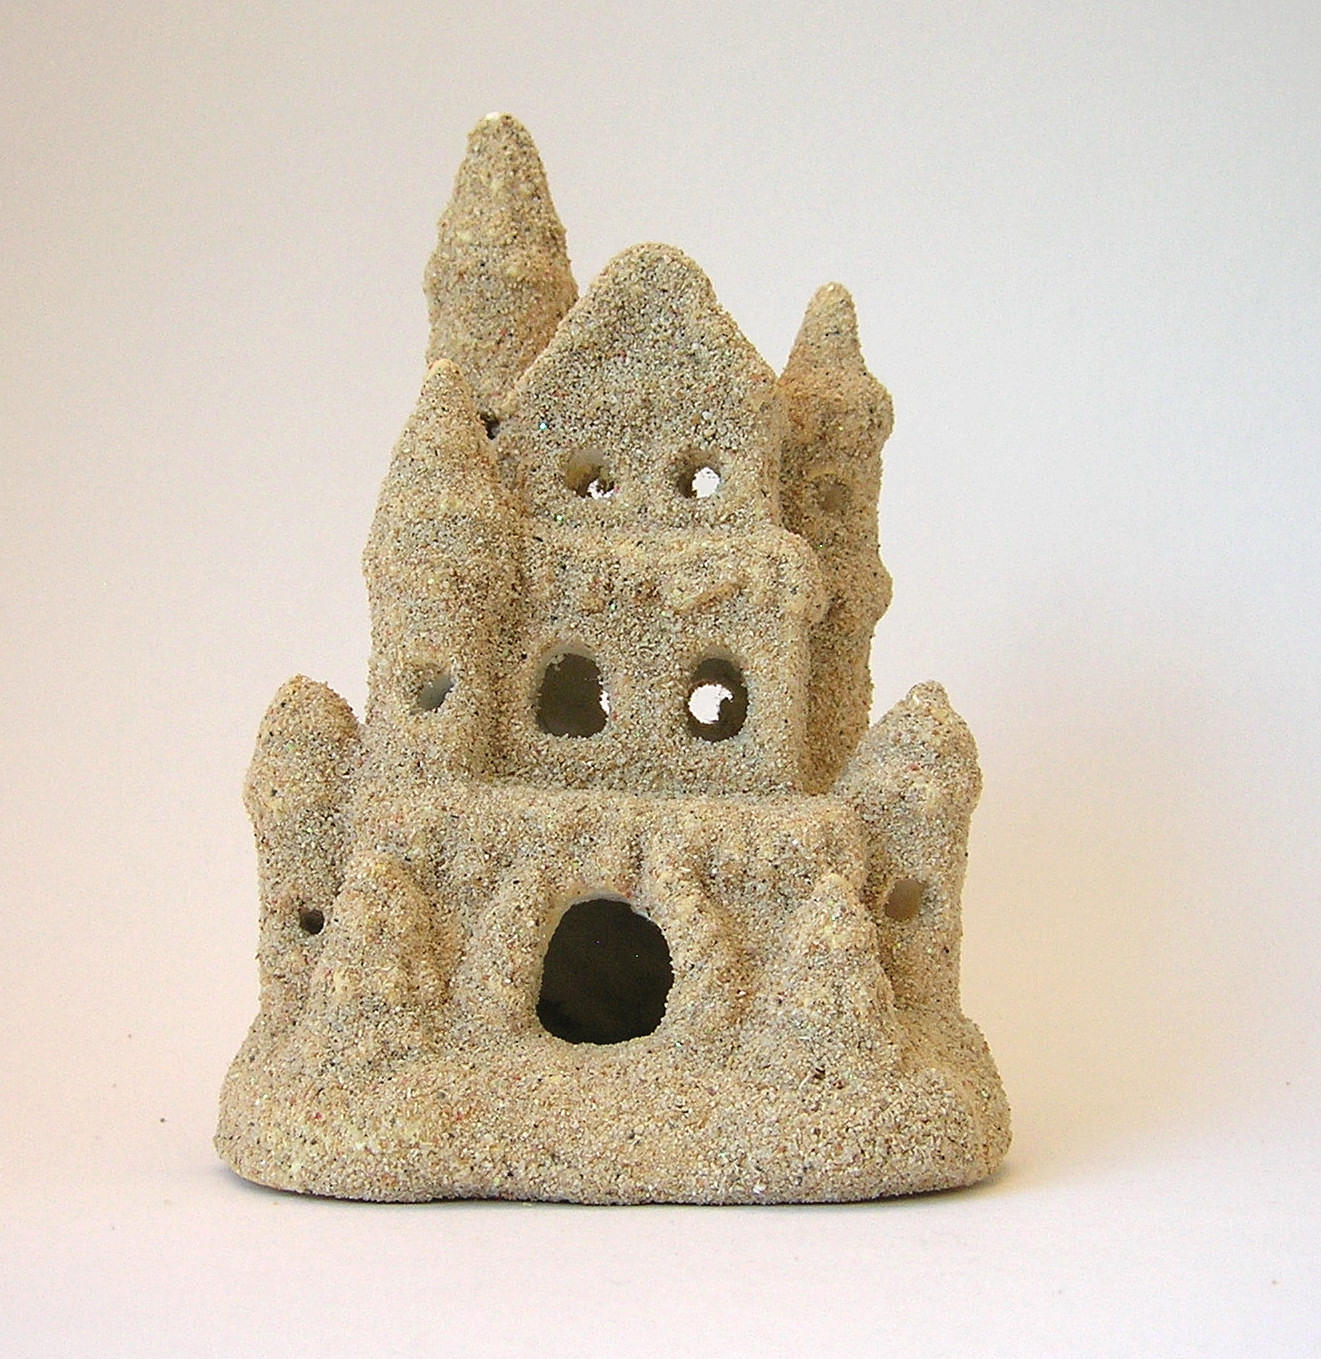 Myths symbols sandplay if a client uses a castle miniature what does the item represent of course much of the answer depends on the particular client their history buycottarizona Gallery